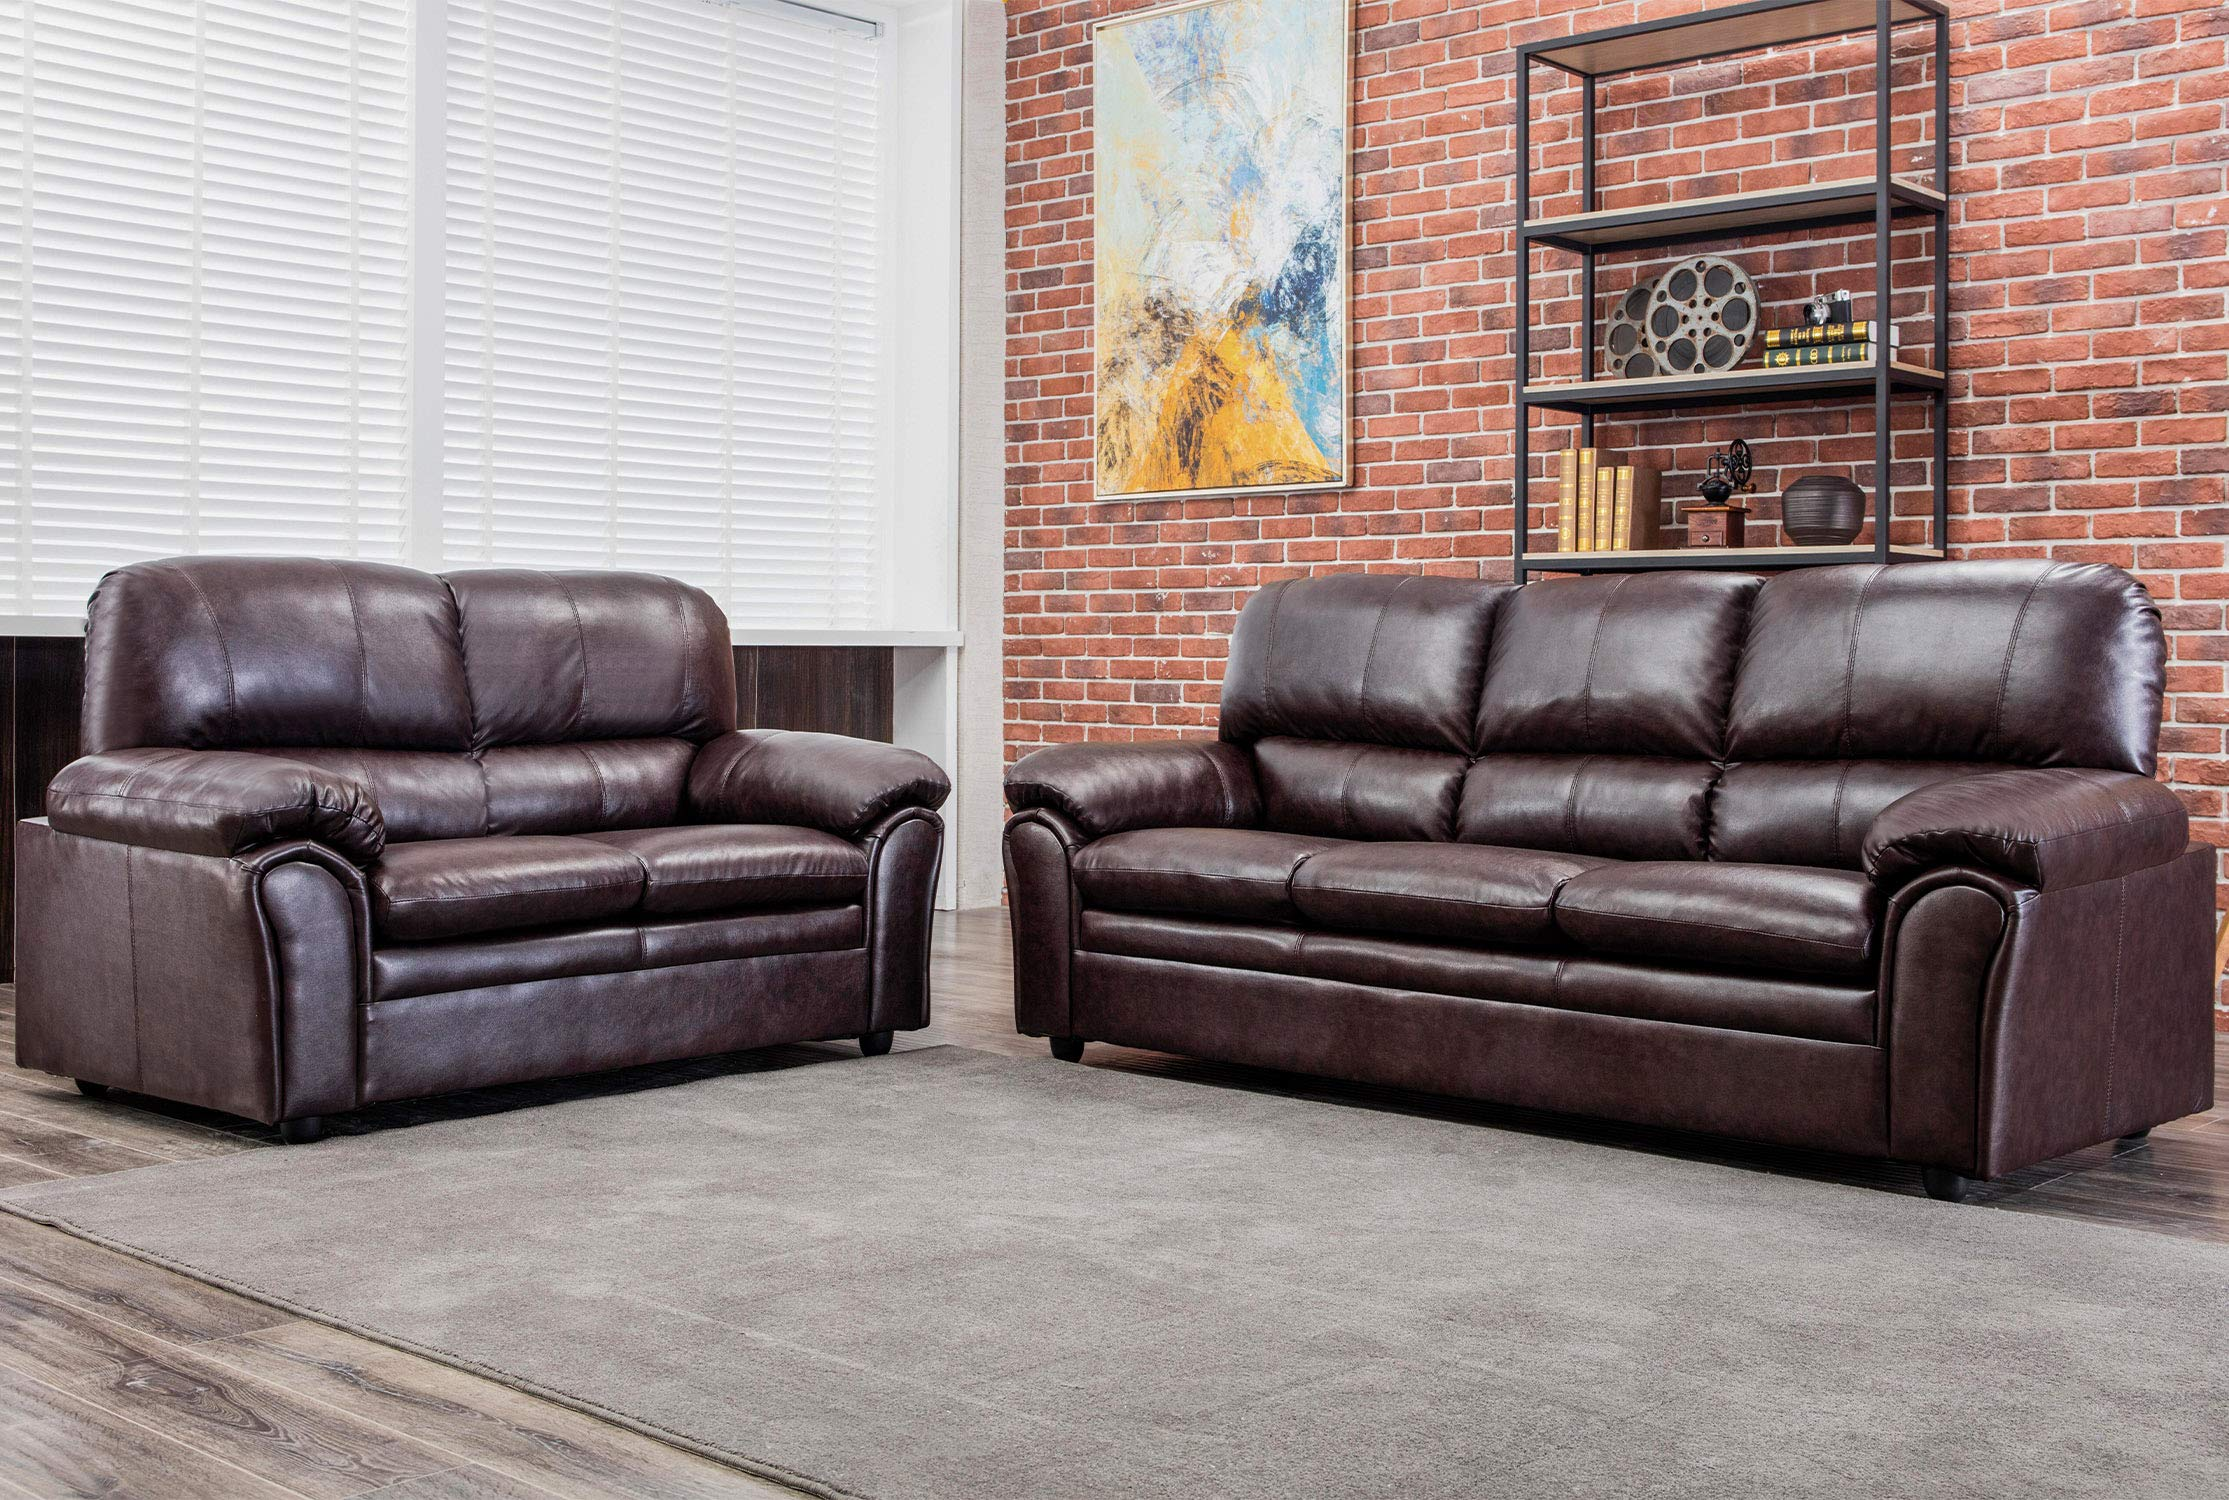 FDW Sofa Set Sectional Sofa for Living Room Couch and Sofas PU Leather Loveseat Sofa Contemporary Modern Sofa for Home Furniture 3 Seat Futon, Brown by FDW